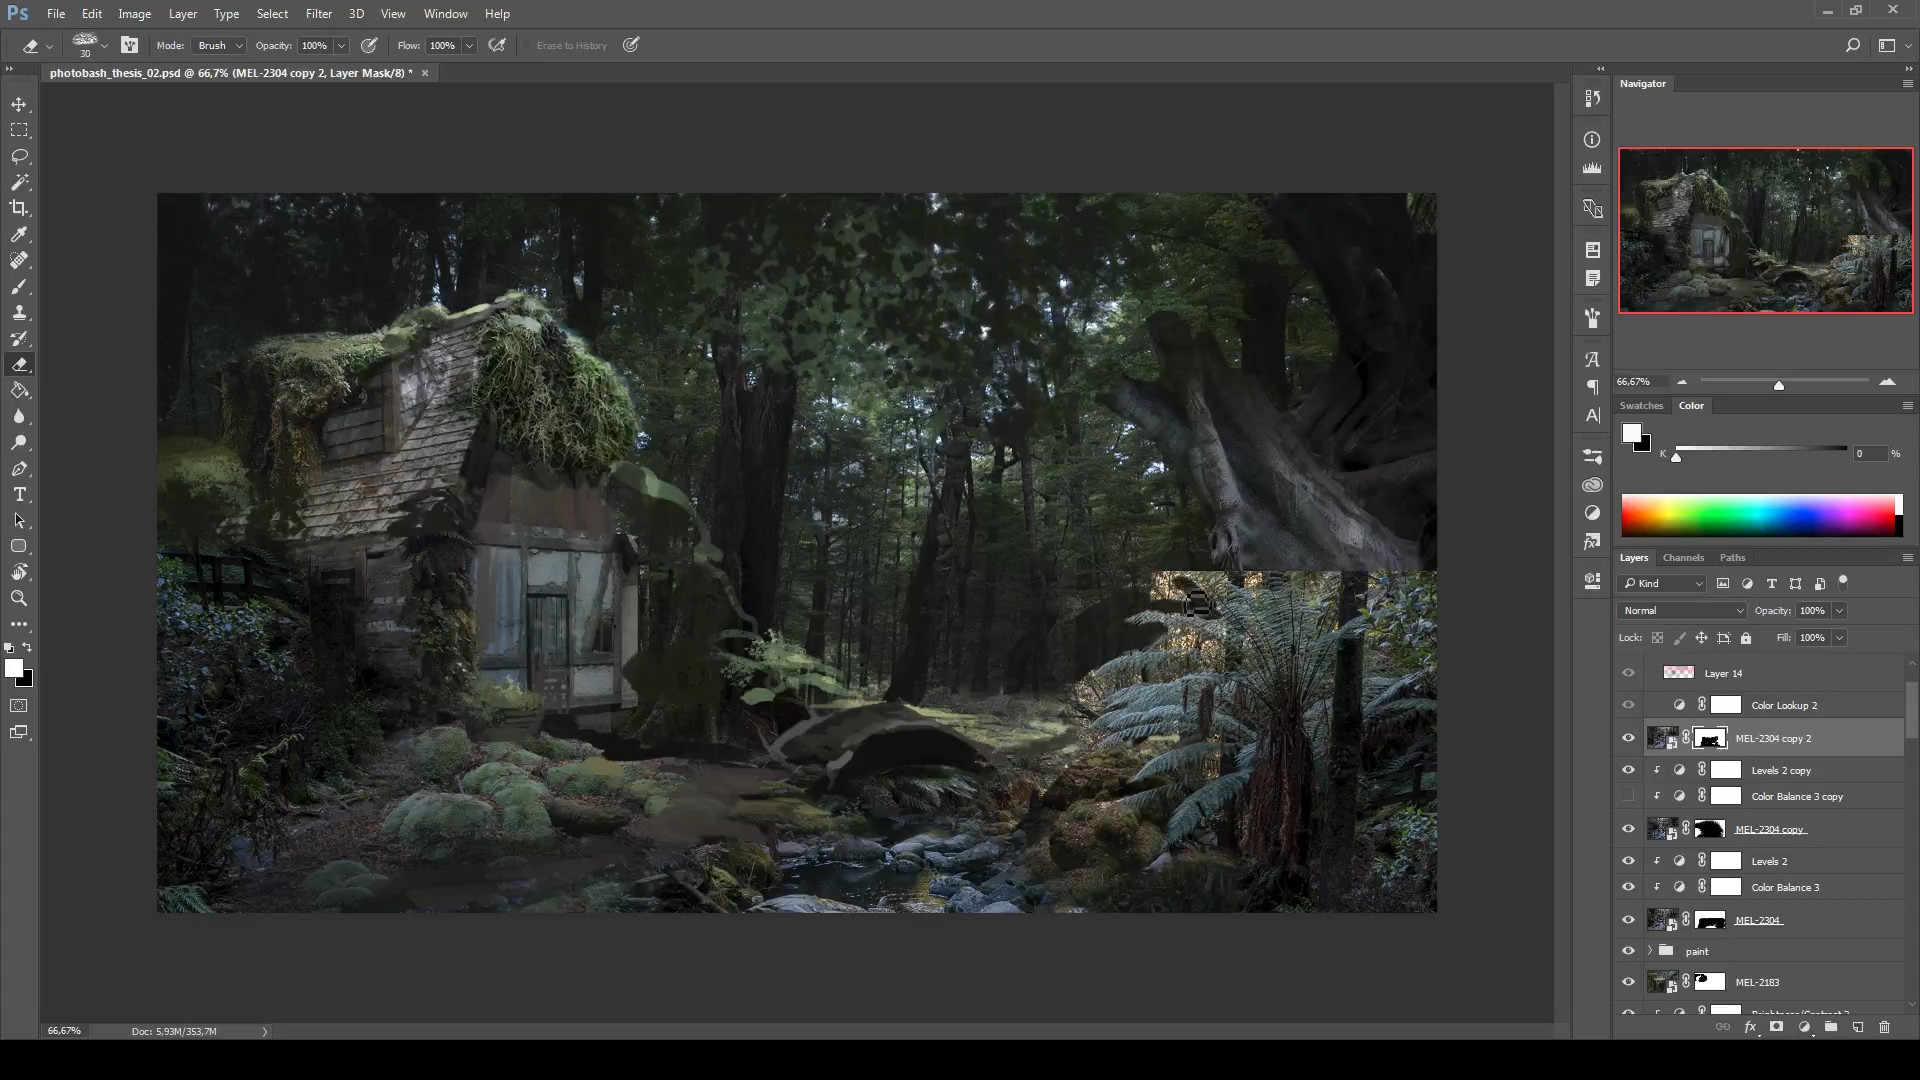 13 - Adding more details and mixing up some photos of varying biomes to make things more interesting and fantasy-esque